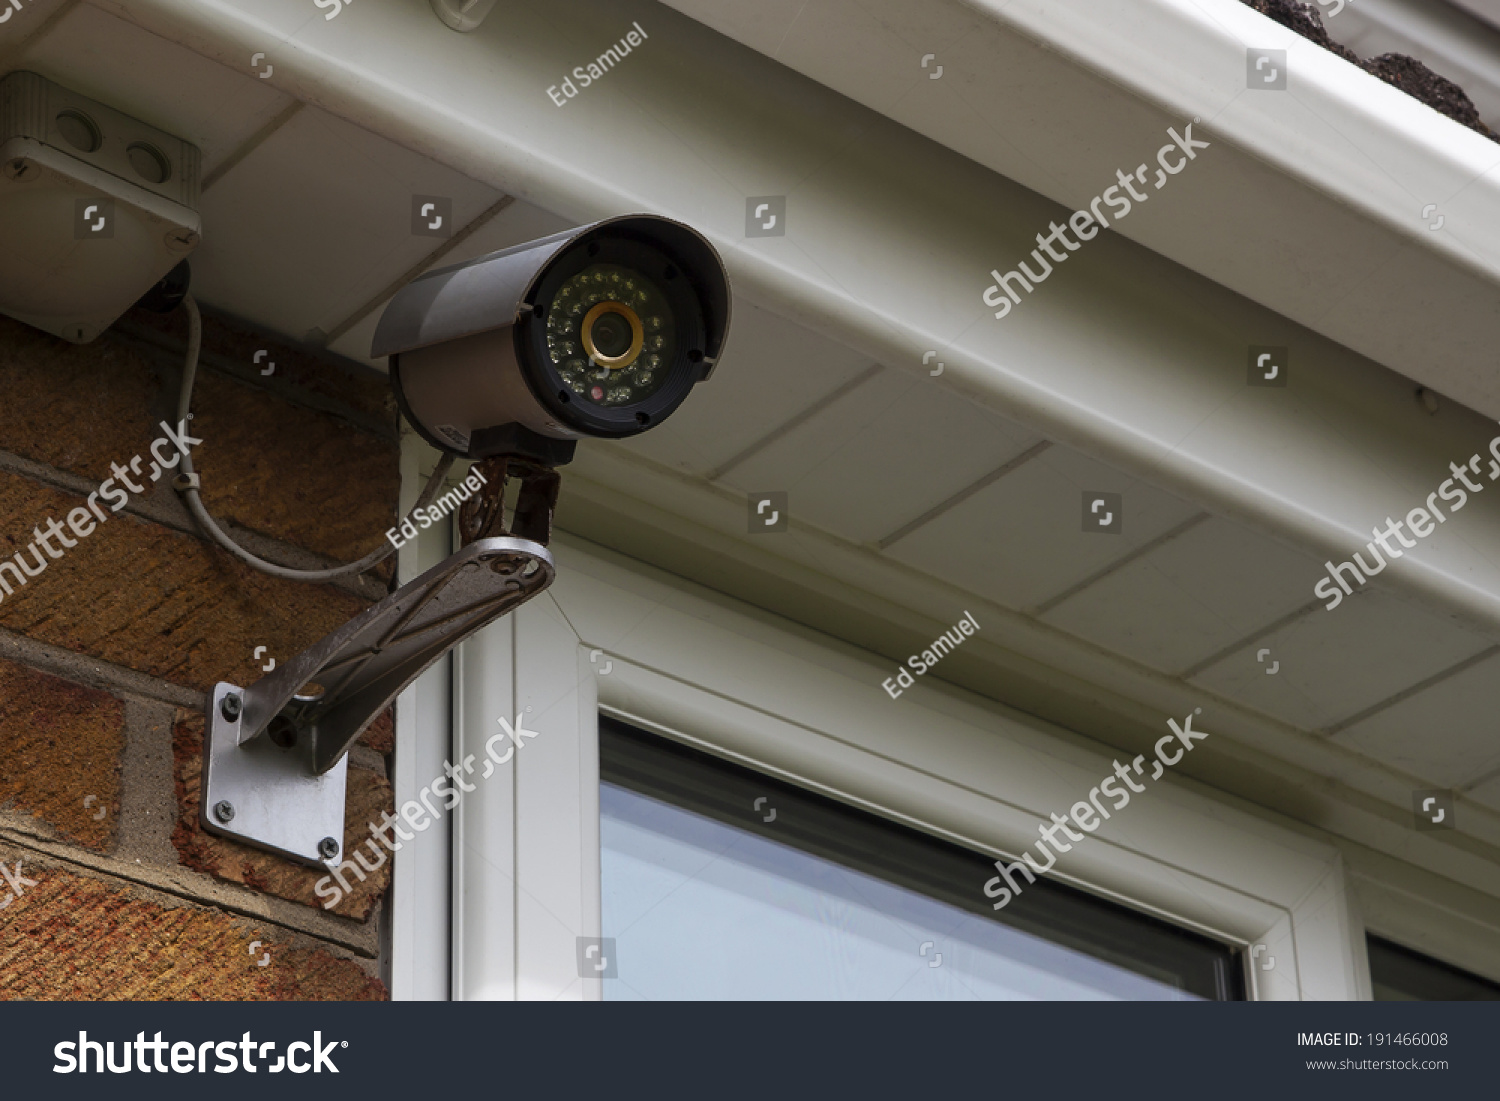 how to make hole to install security camer